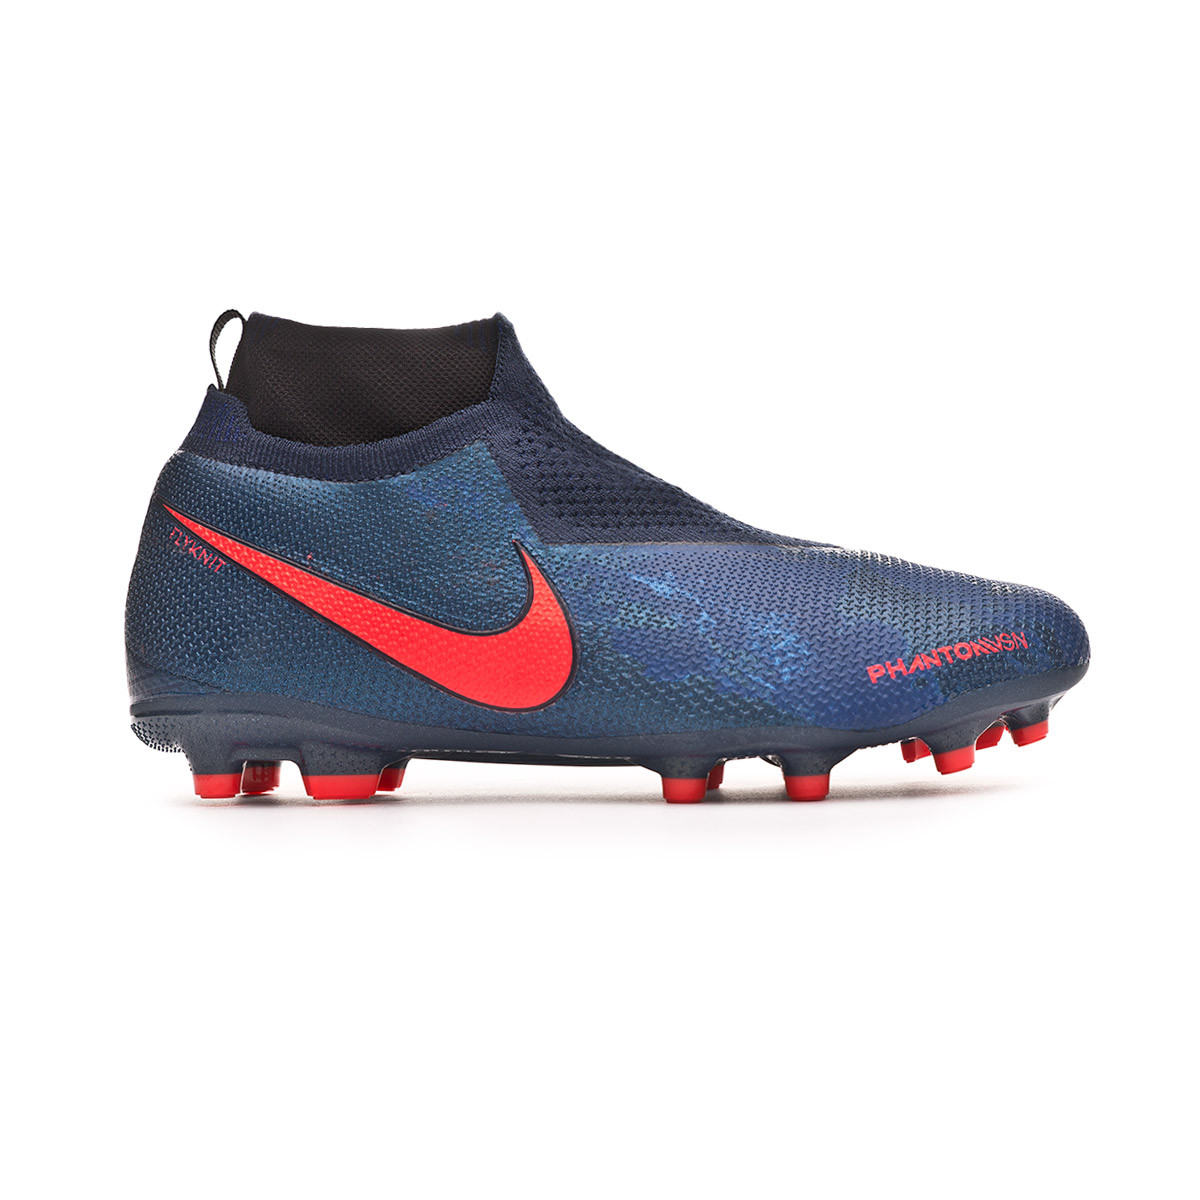 c0f7f05e9accb Football Boots Nike Phantom Vision Elite DF FG MG Niño Obsidian-Black-Blue  void - Tienda de fútbol Fútbol Emotion